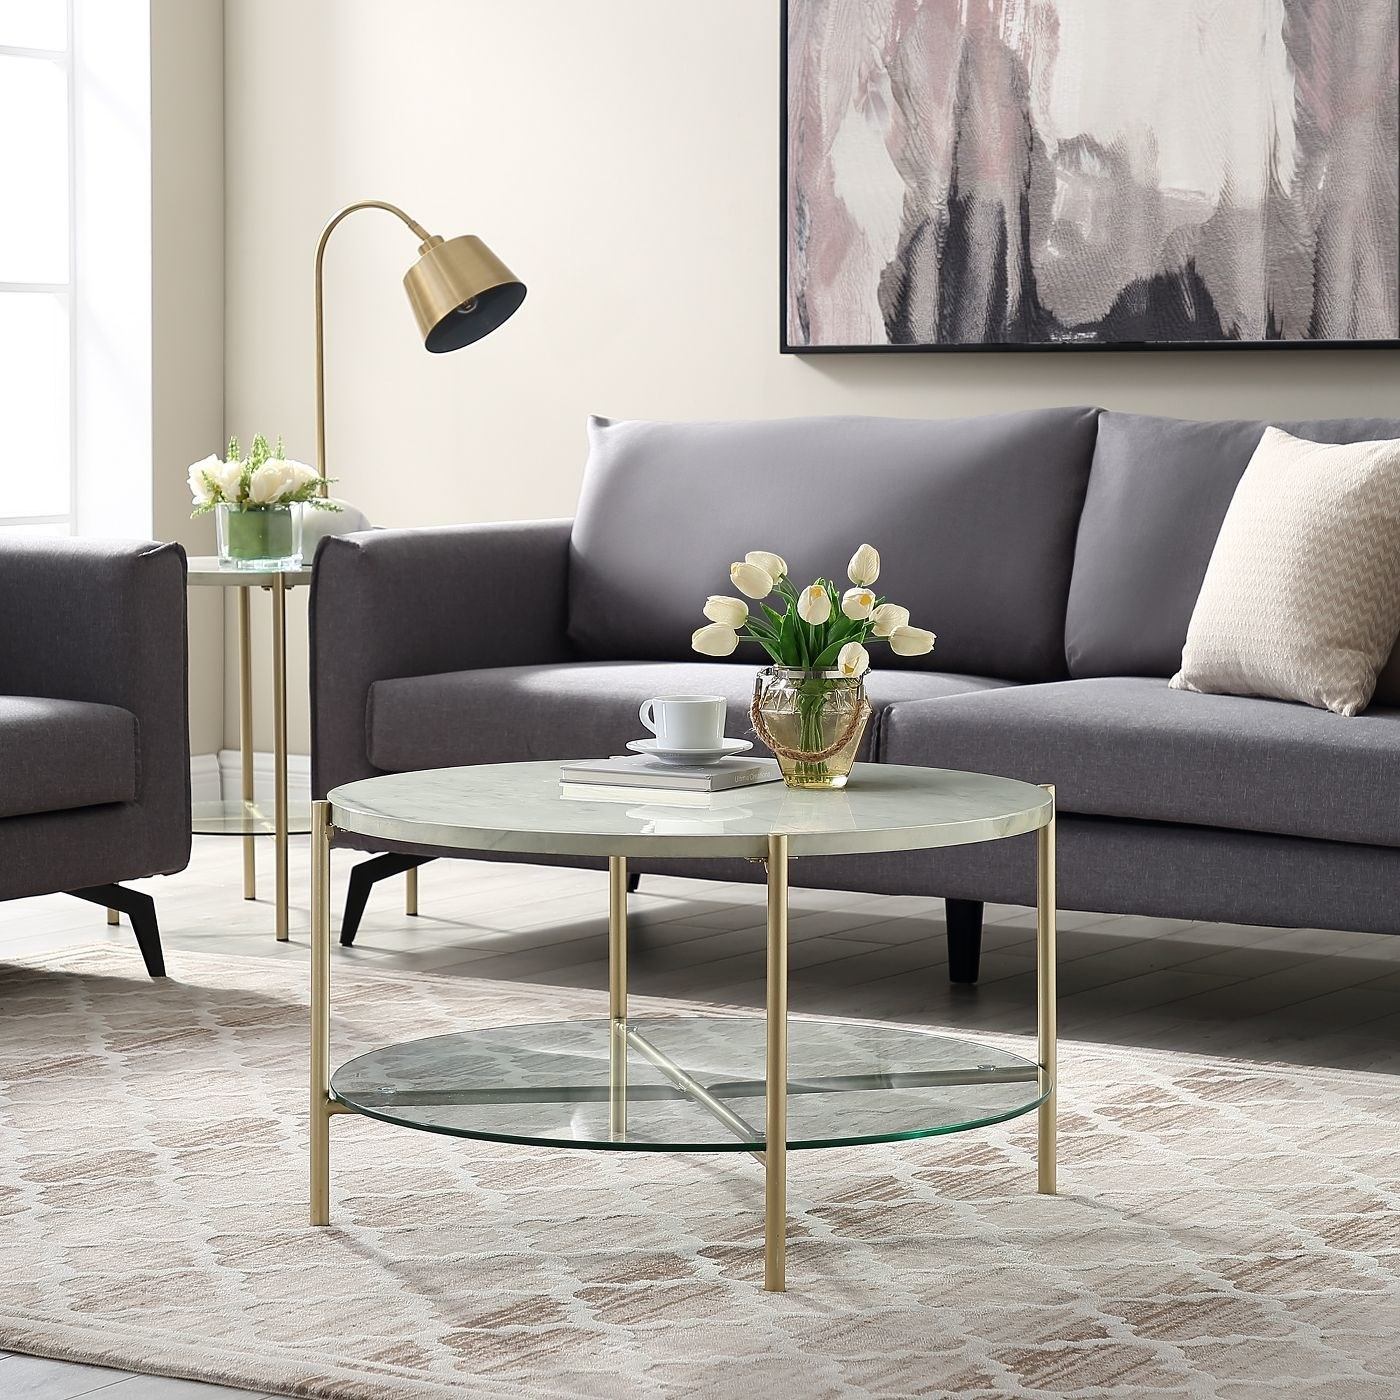 A two-toned coffee table in a home